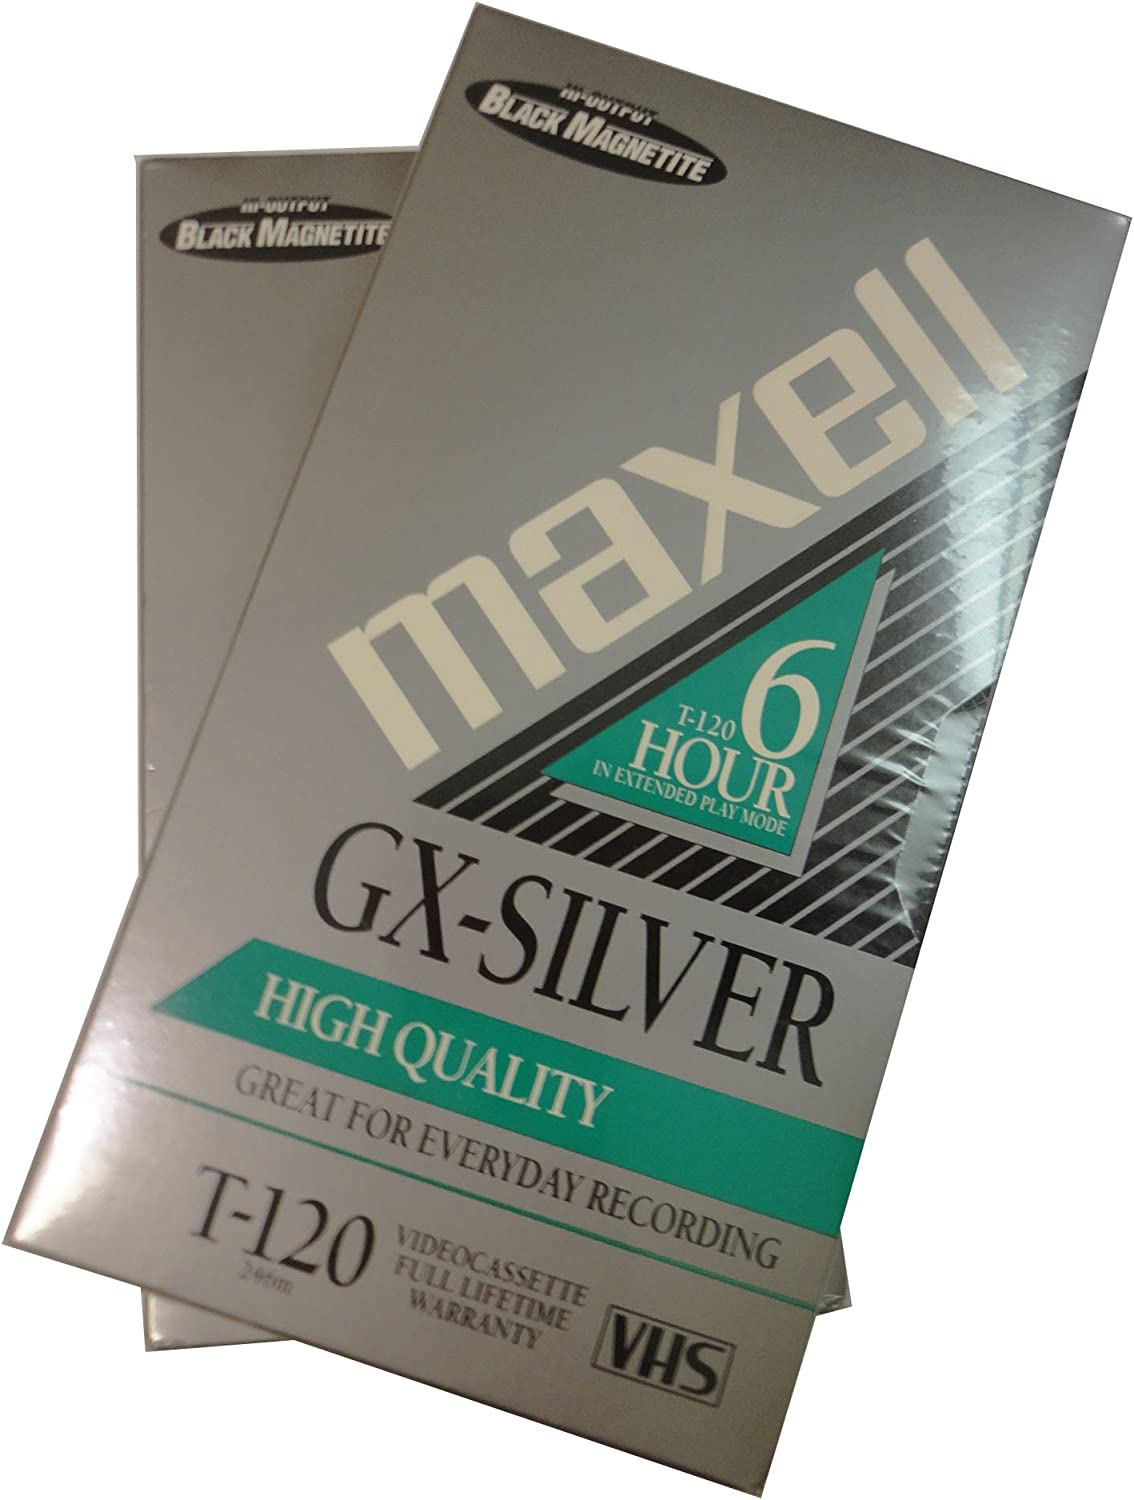 Maxell GX-Silver T-120 VHS 5 Pack